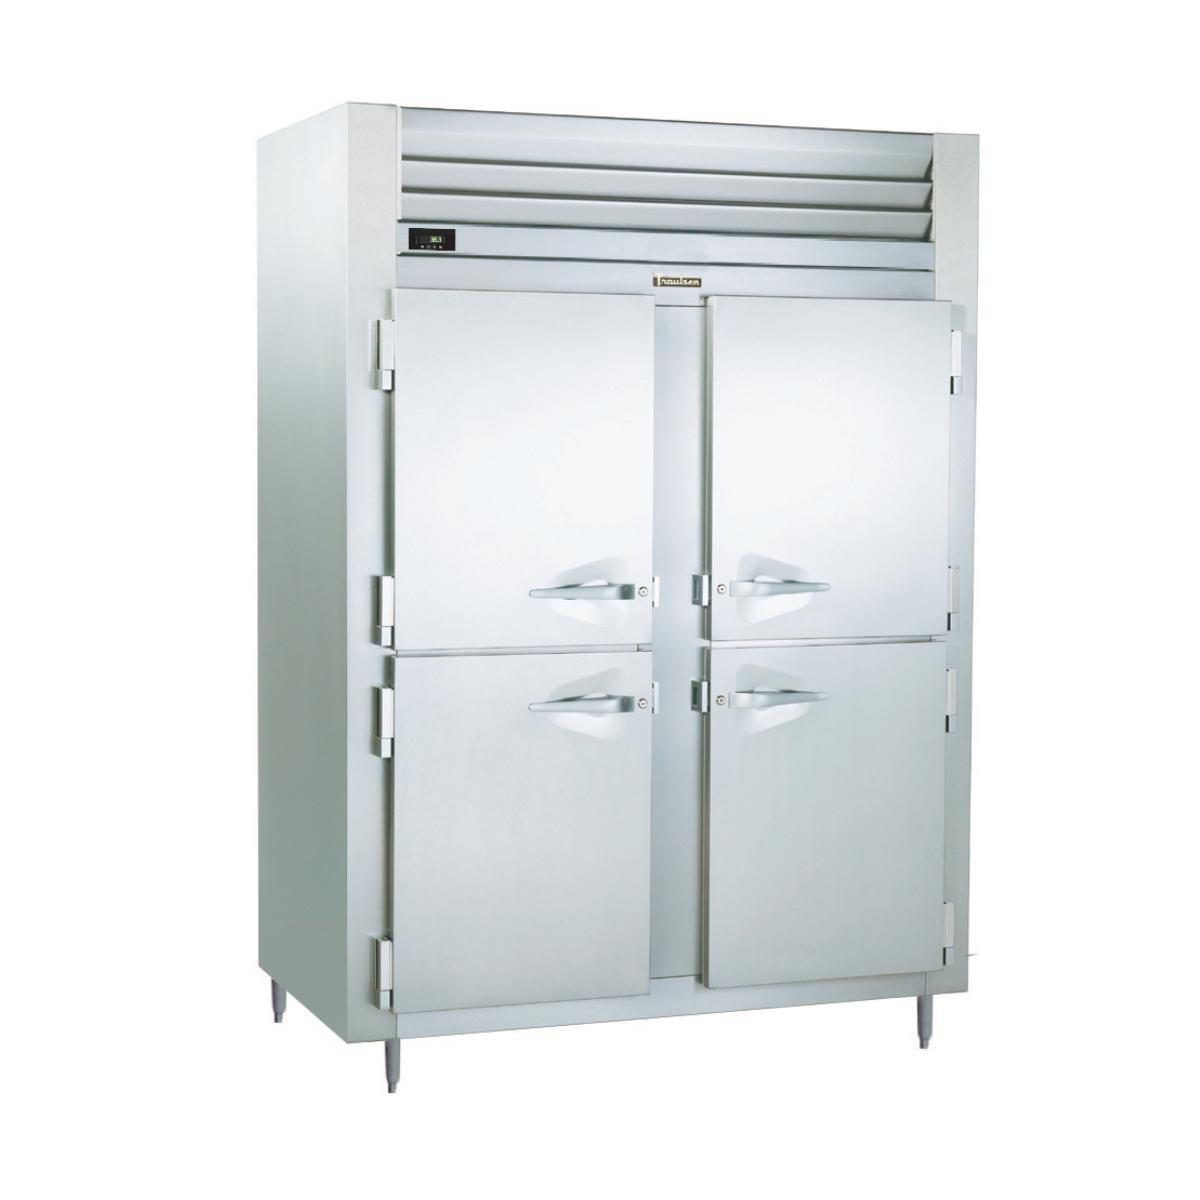 Traulsen AHT232WUT-HHS 2-Section Reach-In Refrigerator